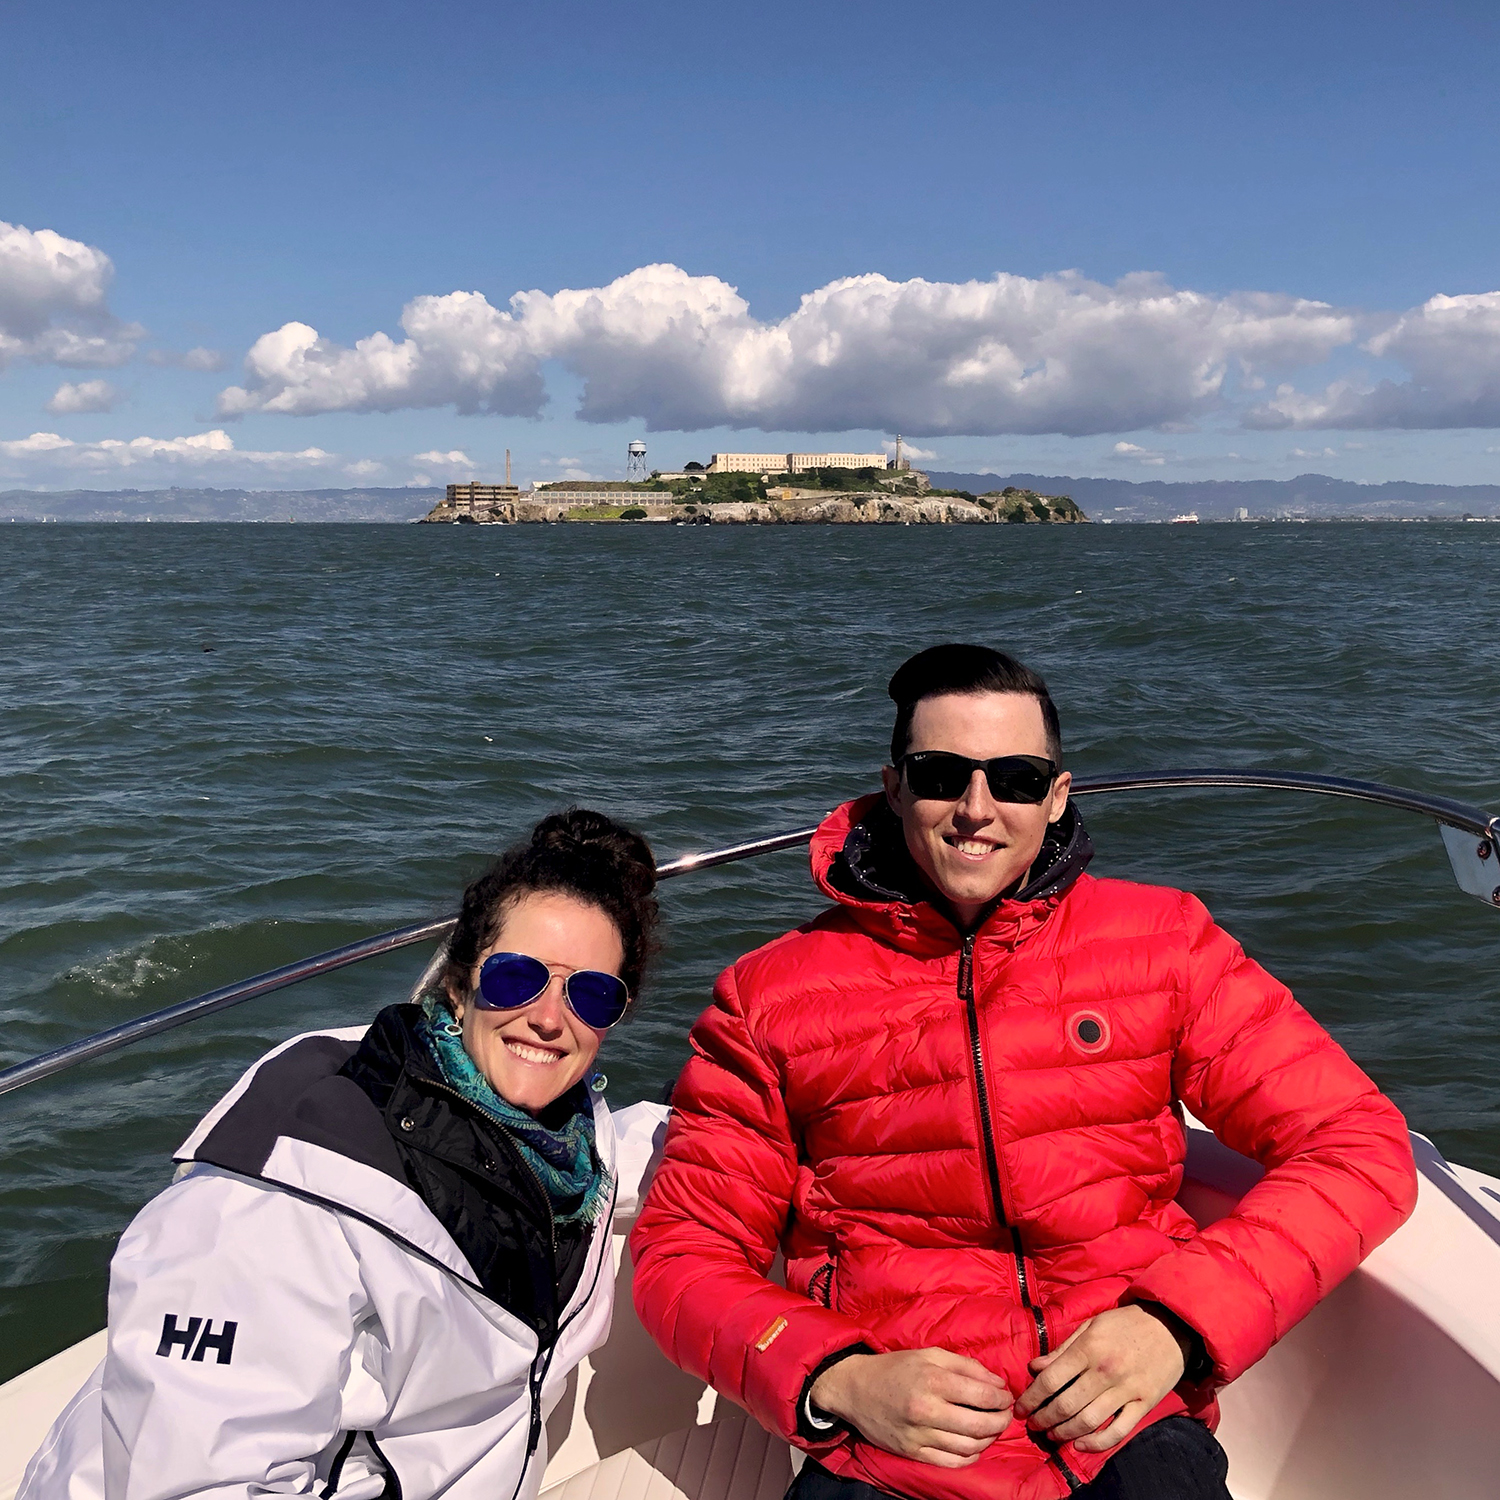 2019 beckers4_SF bay_dana jake on boat.jpg